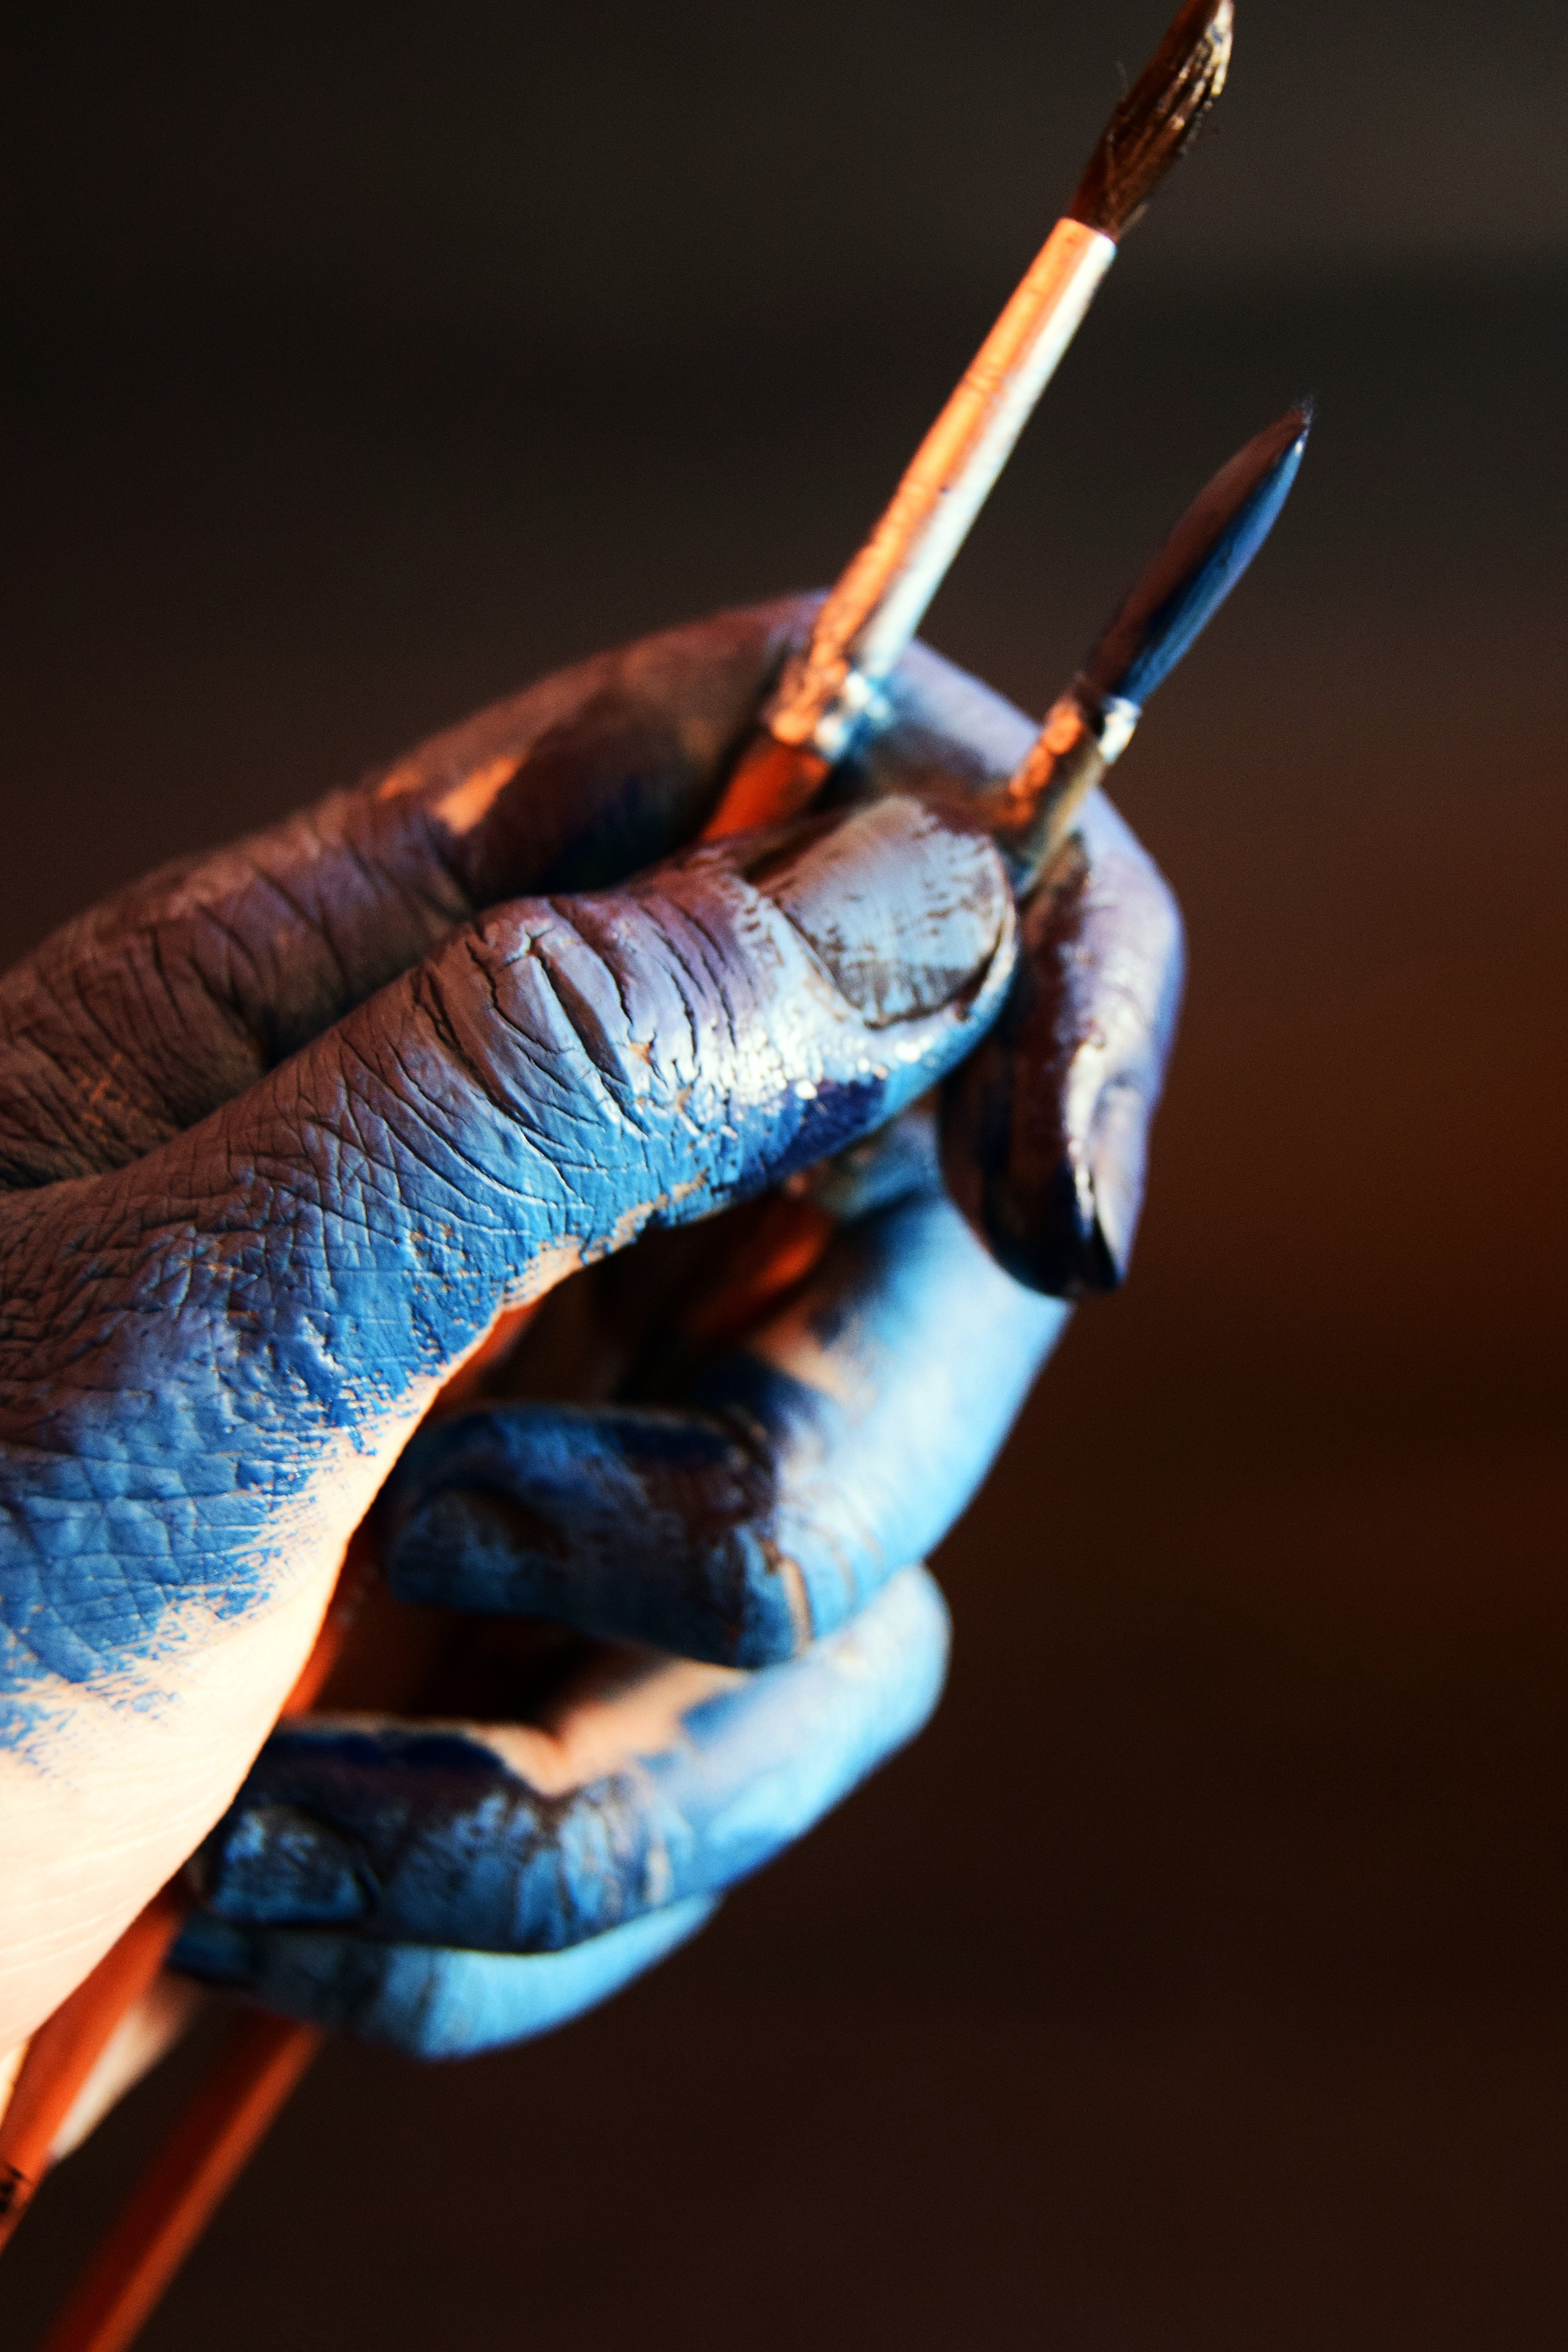 An artist's hand covered in paint | Photo by Vojna Andrea on Unsplash